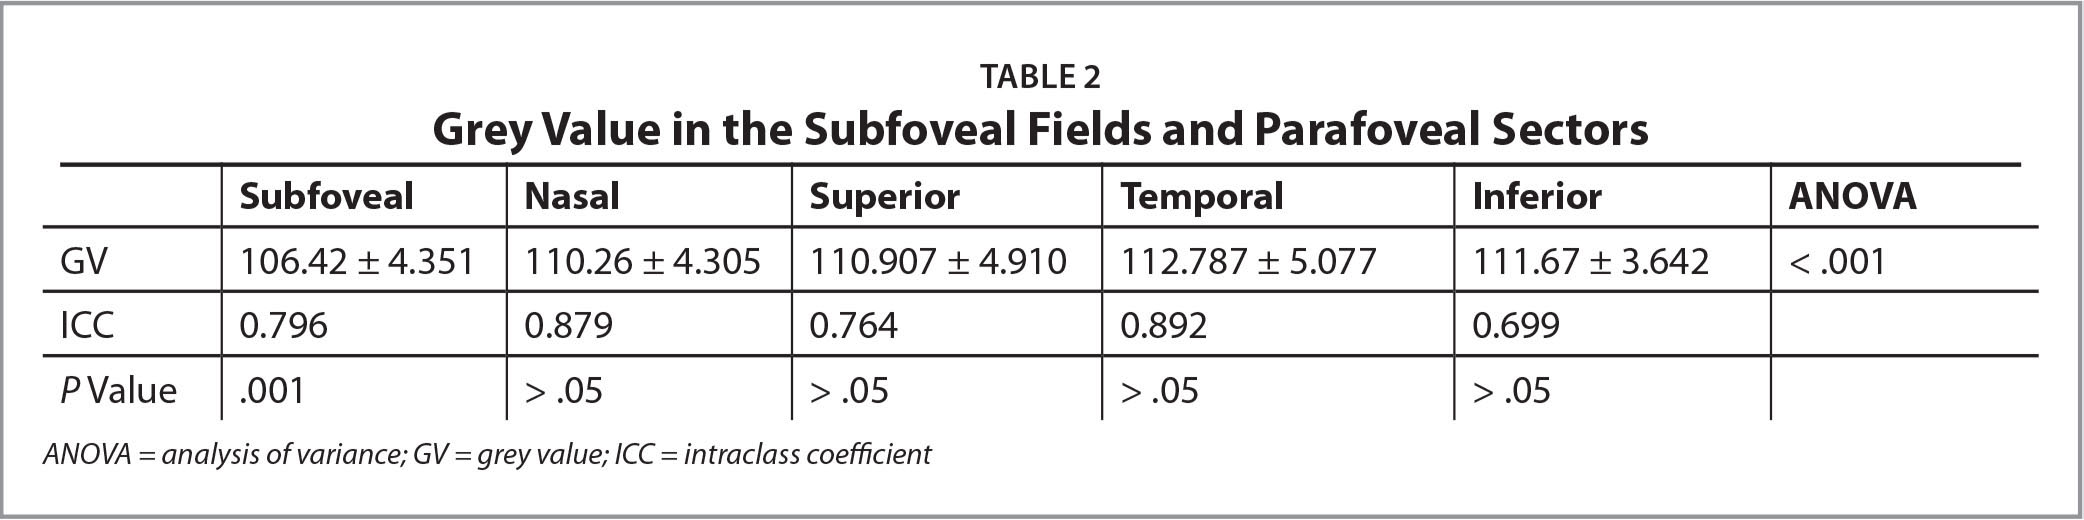 Grey Value in the Subfoveal Fields and Parafoveal Sectors